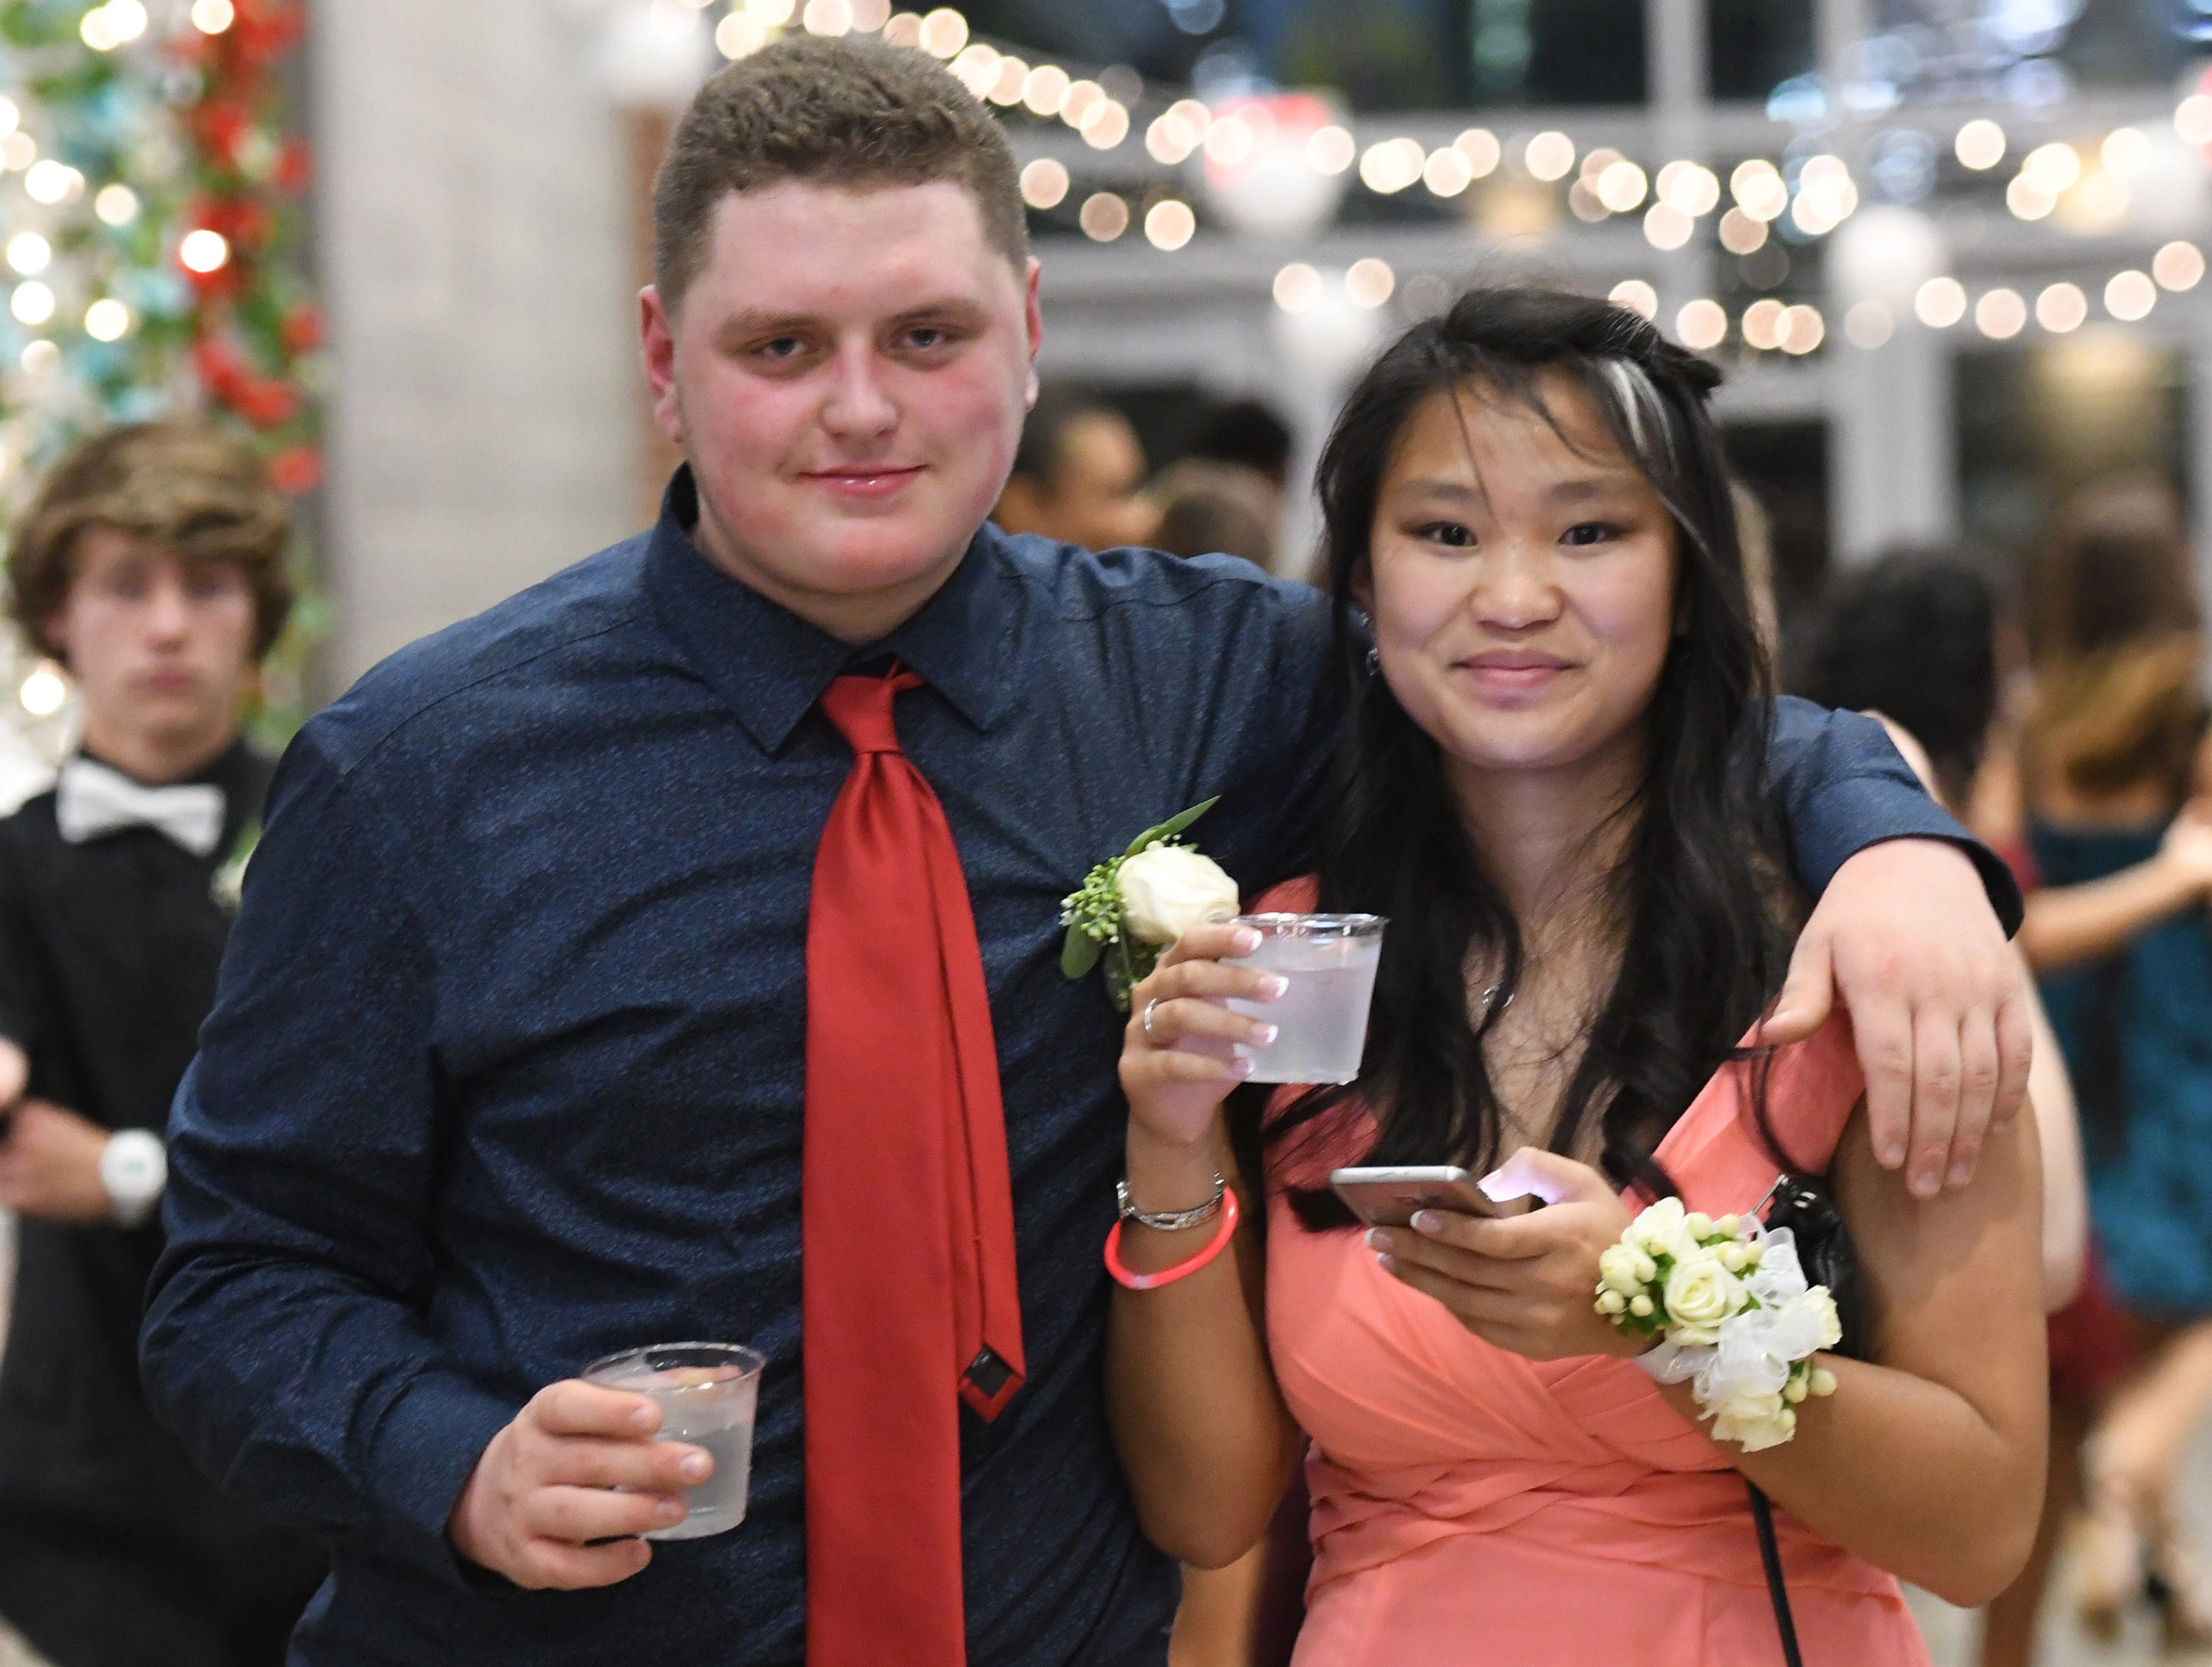 Treyee Wilson and Elliana Miller at James M. Bennett High School Homecoming Dance Saturday night at the school in Salisbury. 780 youth attended the annual dance.